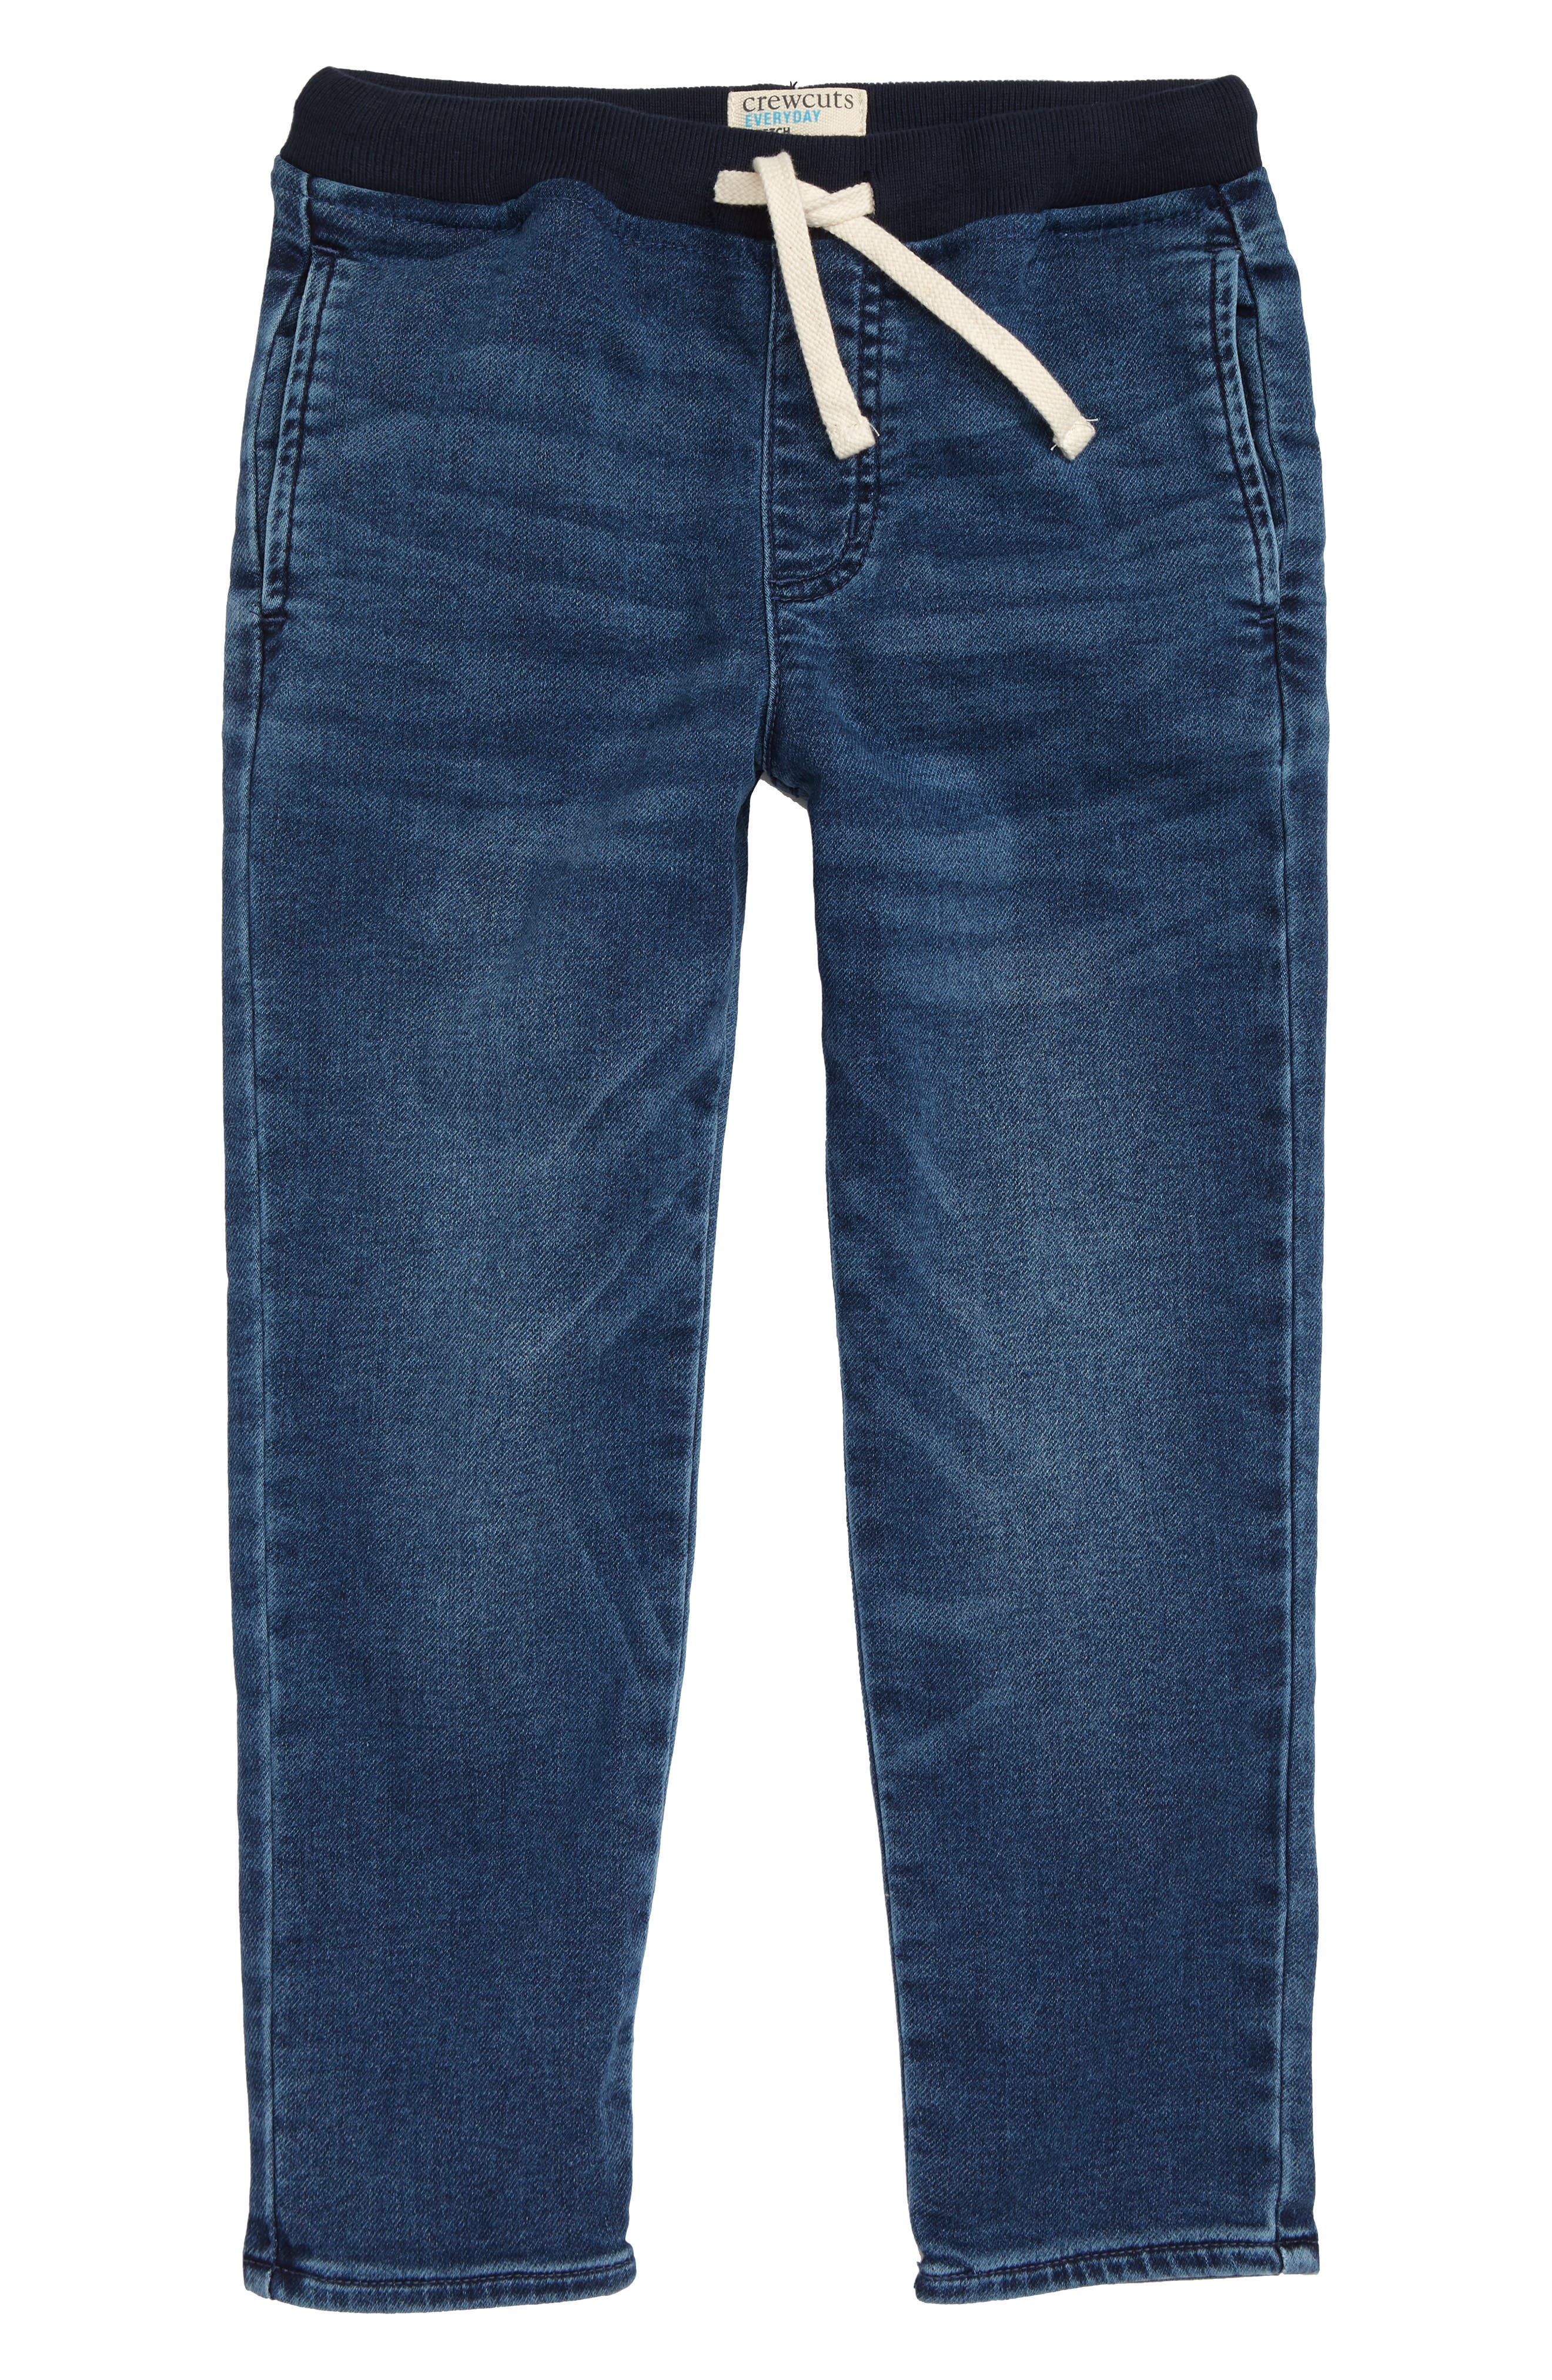 Runaround Pull-On Jeans,                             Main thumbnail 1, color,                             400